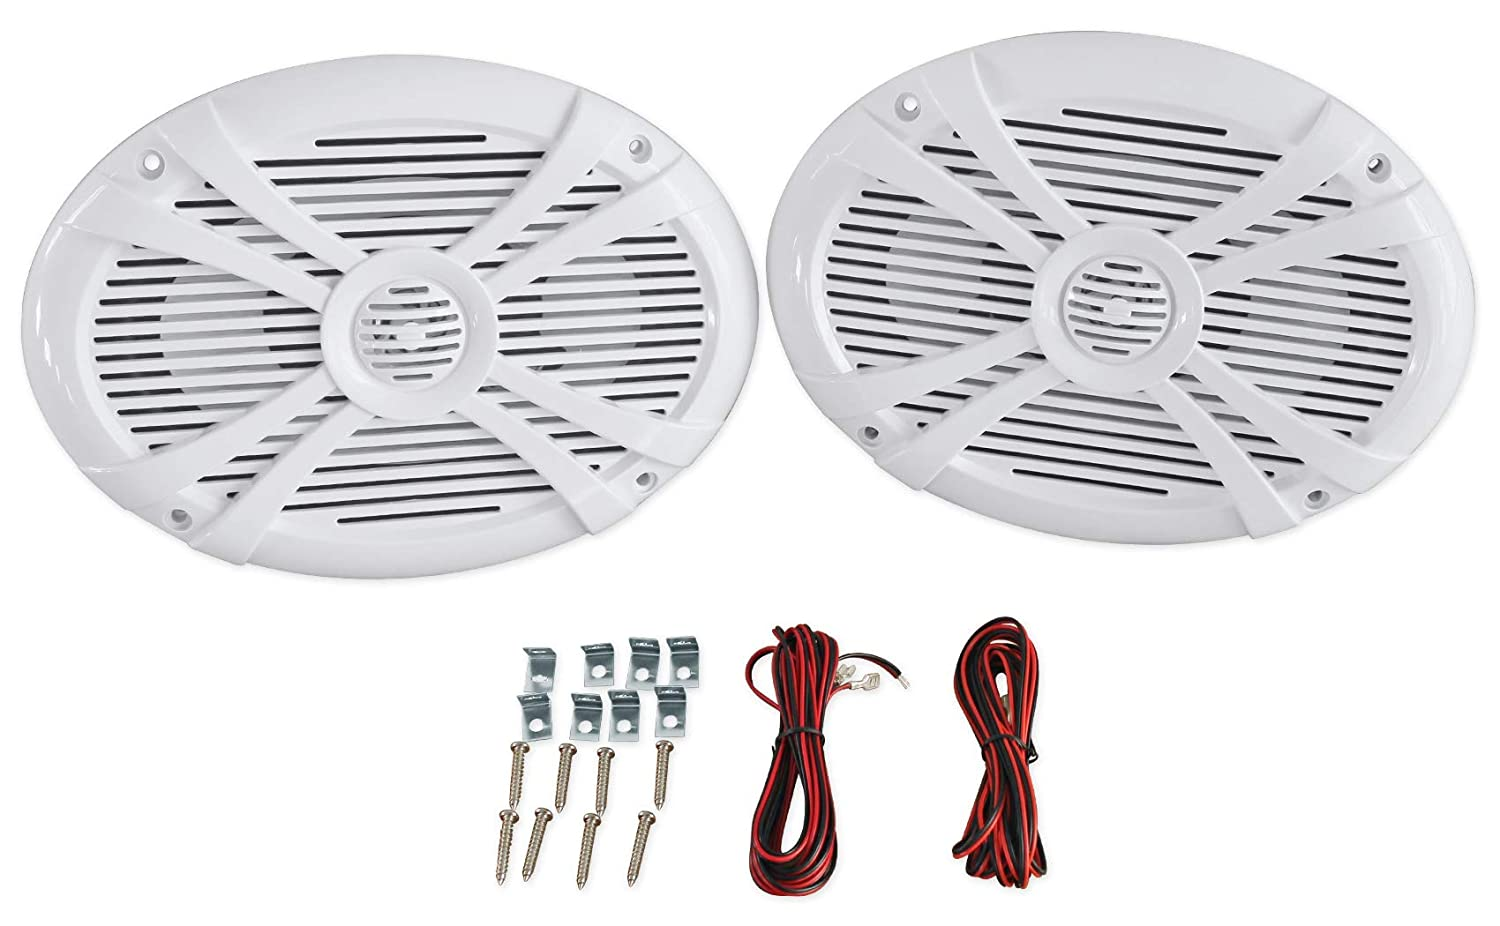 Rockville Rmsts69w Pair 6x9 1000w Waterproof Marine Boat Speakers 2-Way White Audiosavings